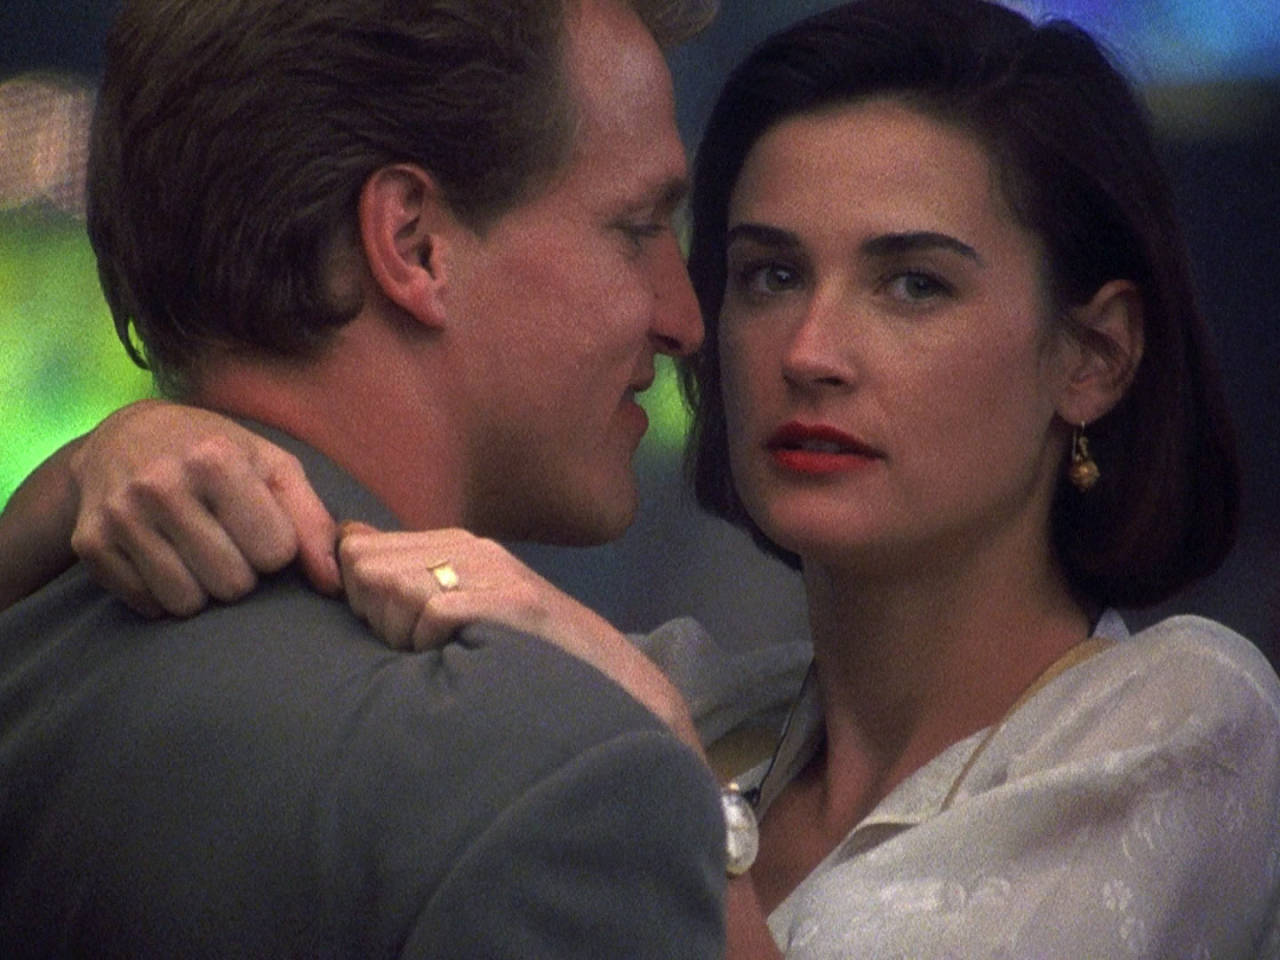 Indecent-Proposal-101-1280x960.jpg